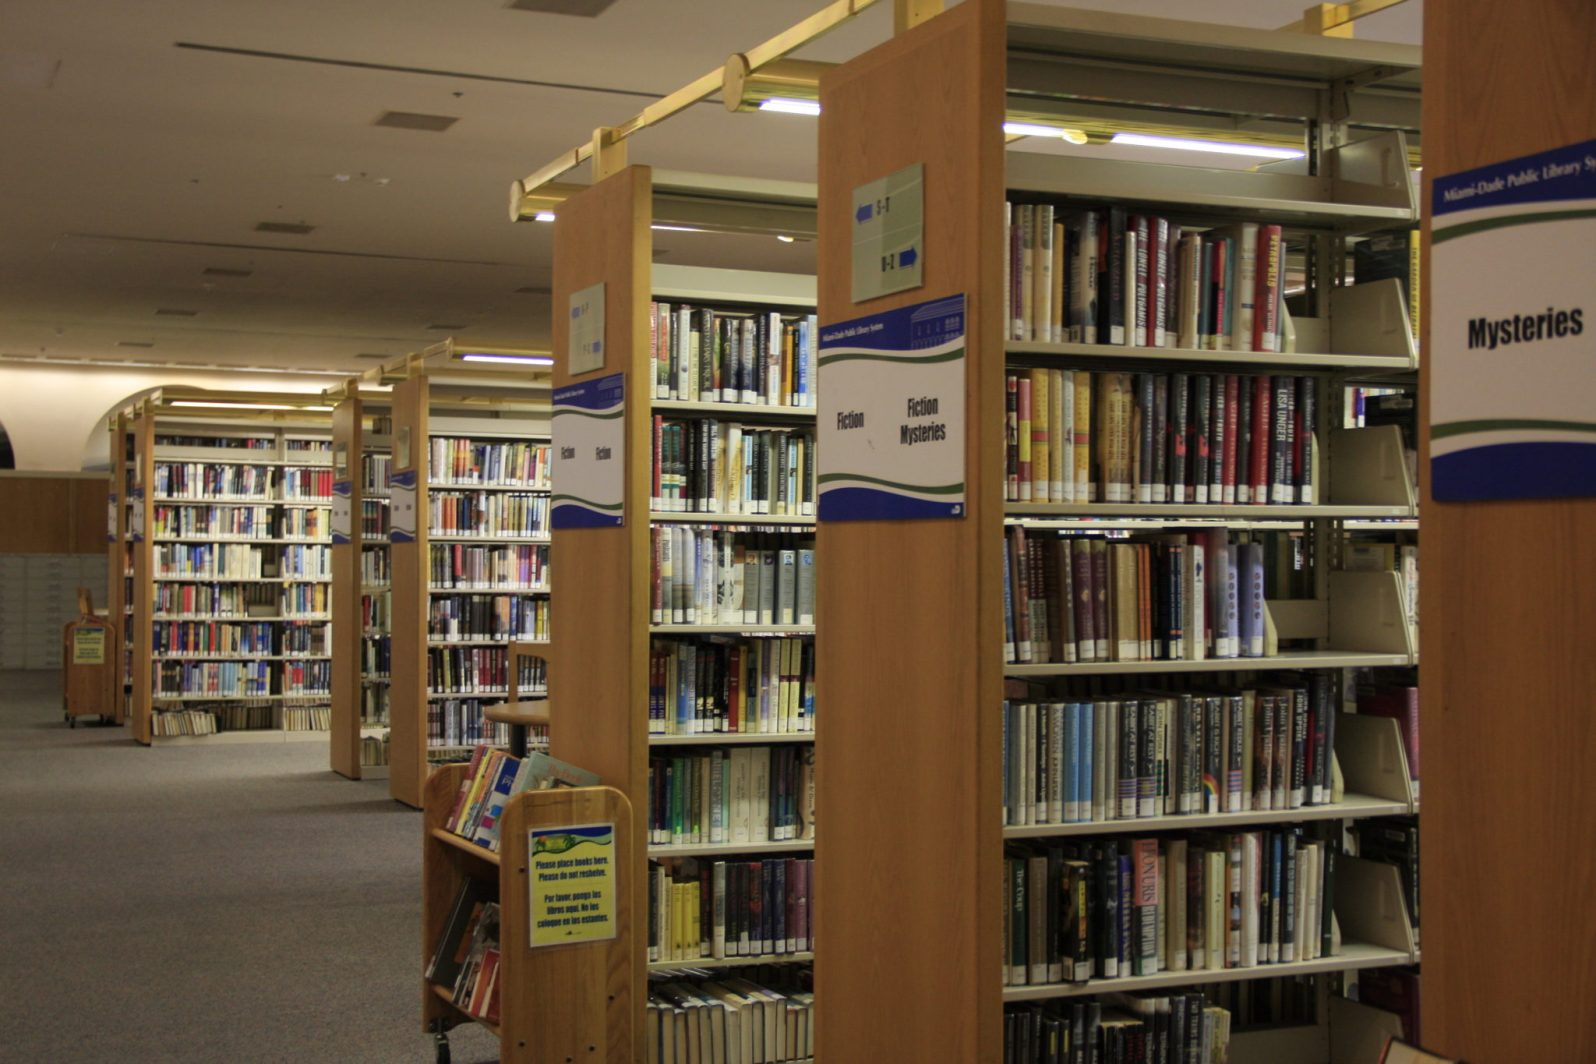 Books in the fiction section.